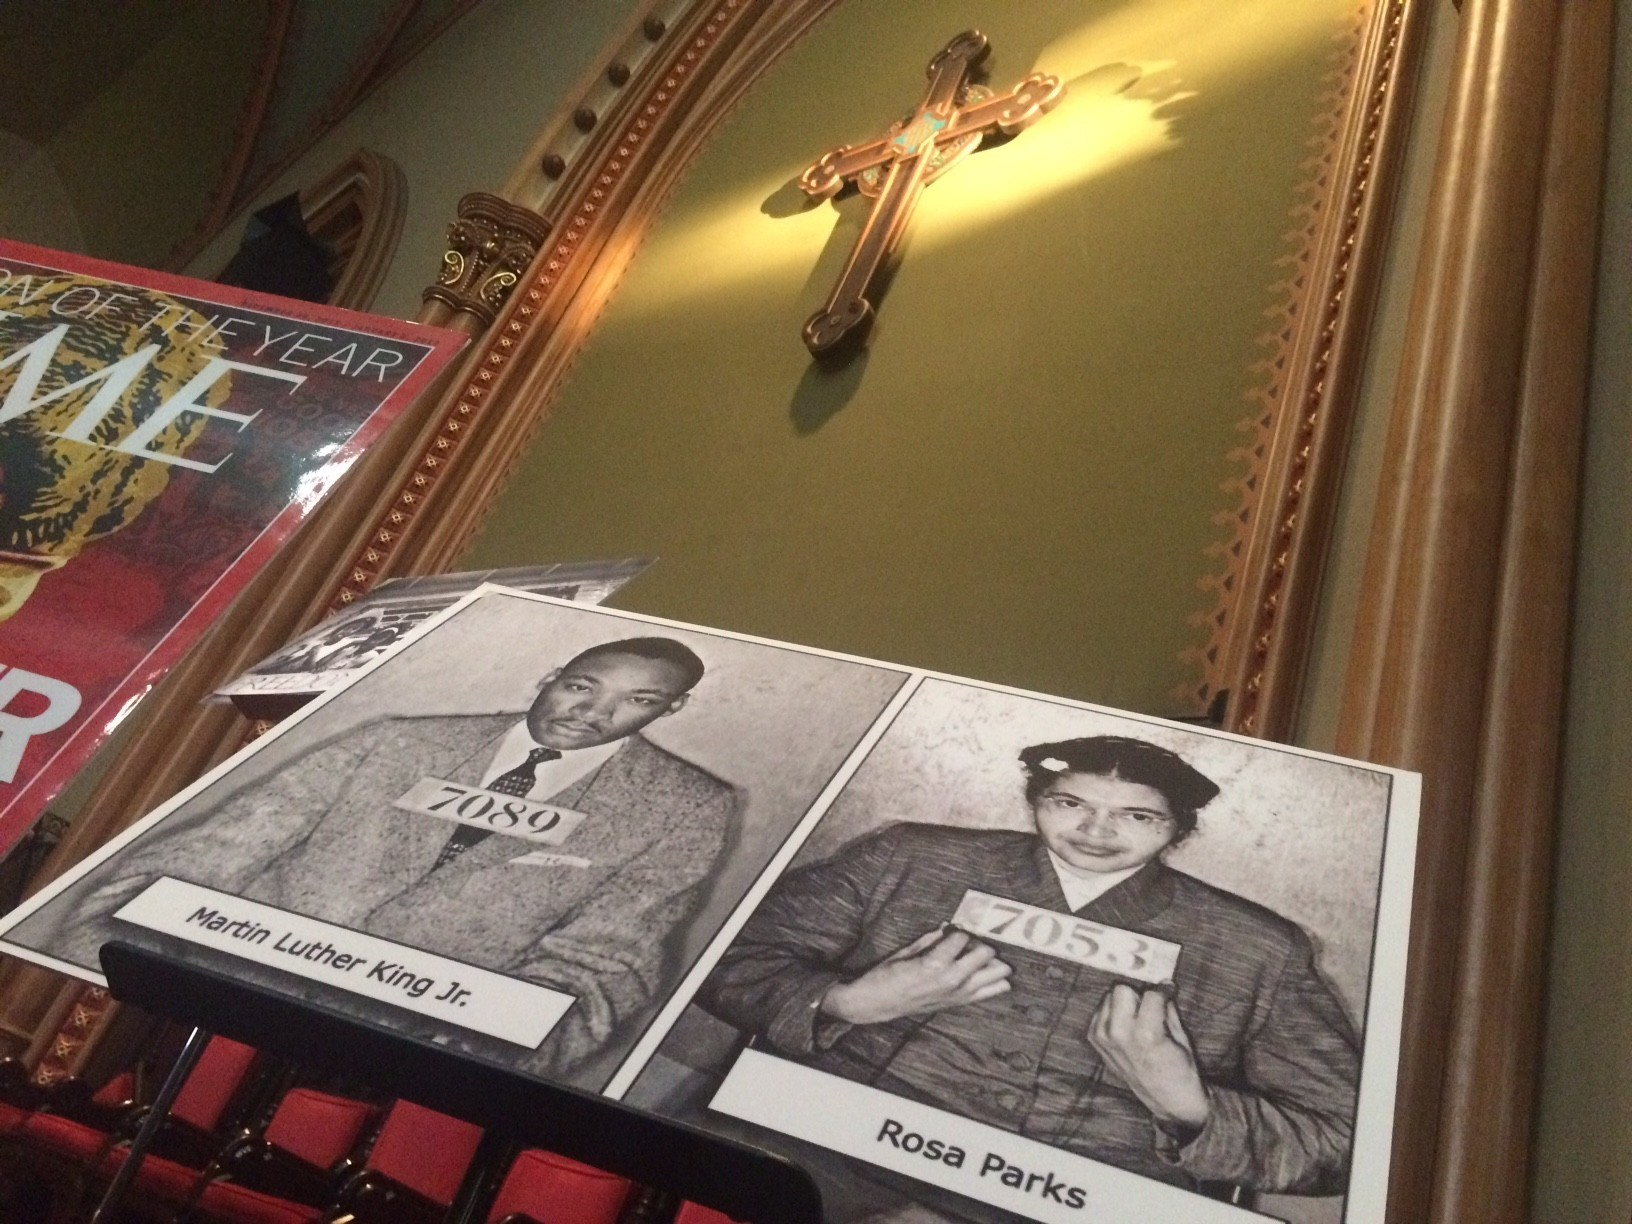 Mugshots of Martin Luther King Jr. and Rosa Parks at Arch Street United Methodist Church in Philadelphia